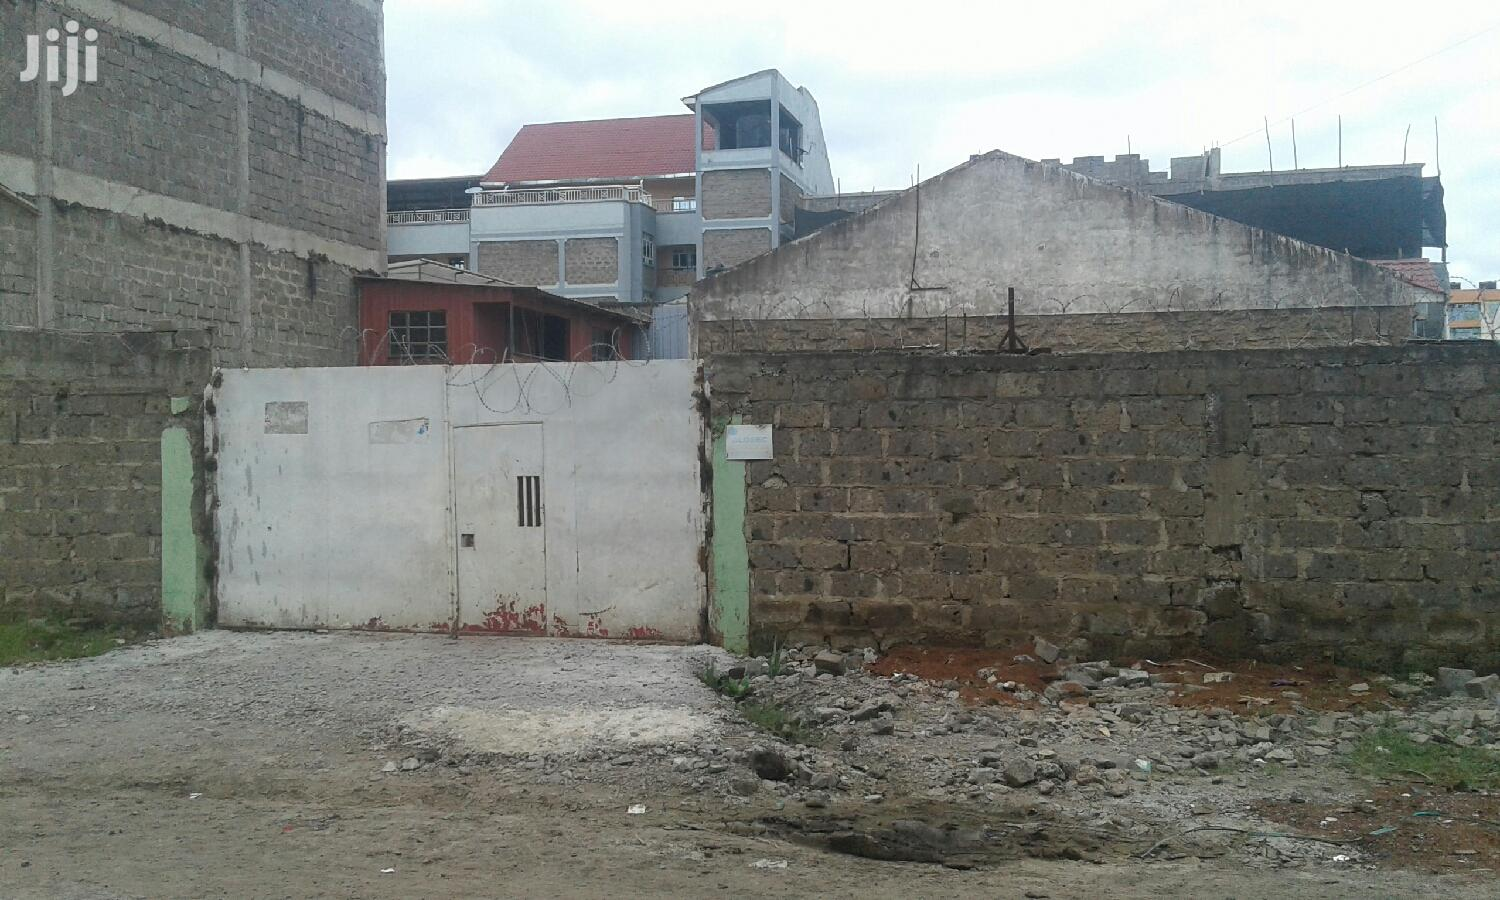 Archive: Utawala 50*100 Ft Yard To Let Near GSU. Perimeter Wall, Razor, Cabro.